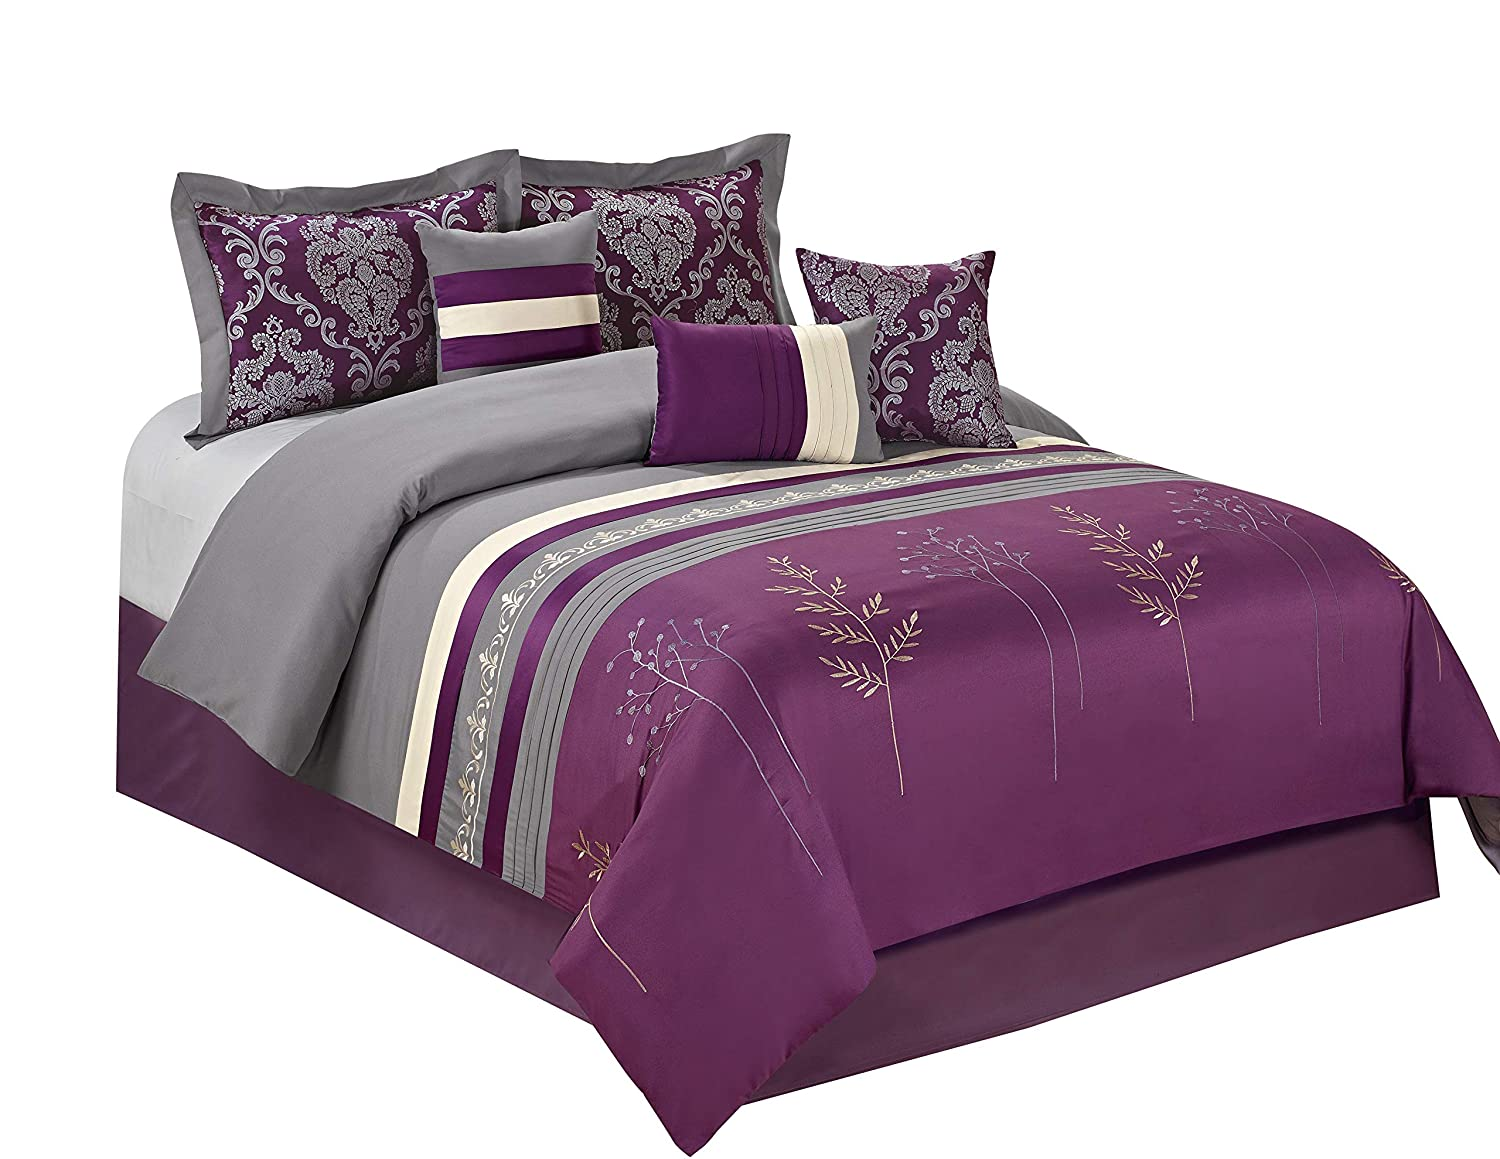 HIG 7 Piece Comforter Set Cal.King-Purple Microfiber Embroidery and Patchwork-DALA Bed in A Bag Cal.King Size-Soft, Hypoallergenic,Fade Resistant-1 Comforter,2 Shams,3 Decorative Pillows,1 Bedskirt